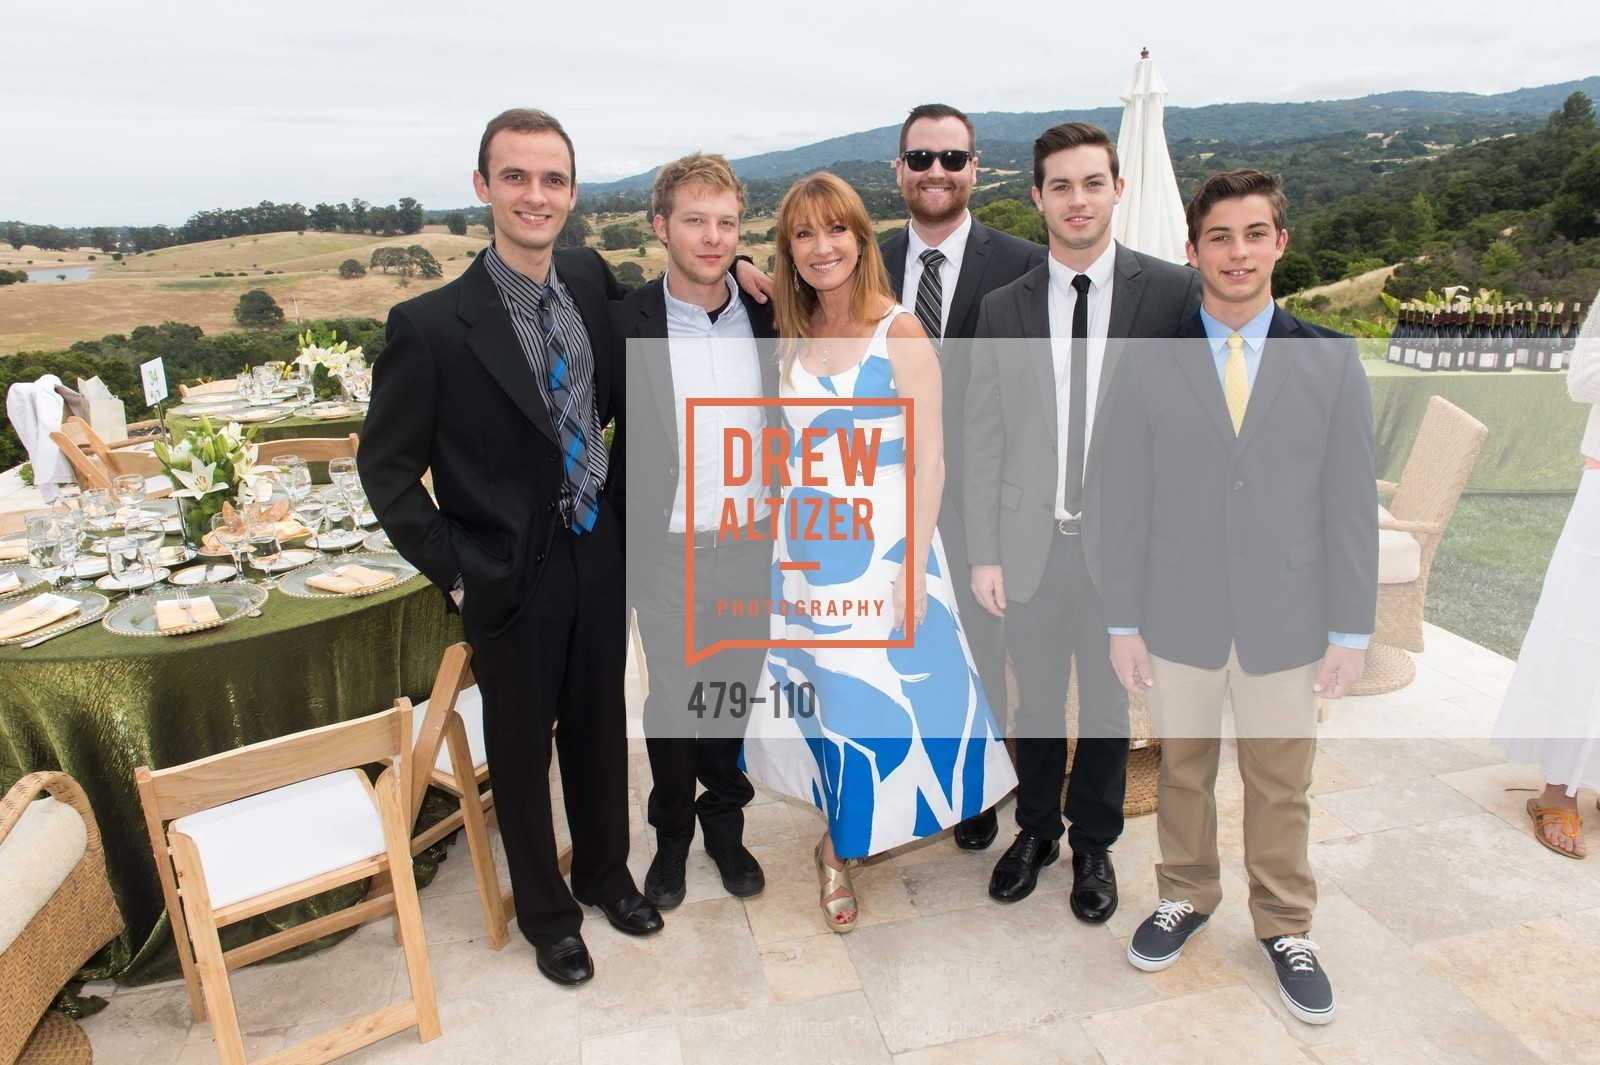 Sean Morgenthaler, Johnny Keach, Jane Seymour, Nick Giampa, Wyatt Giampa, Sawyer Giampa, LYME AID 2015 Benefiting the Bay Area Lyme Foundation, Private Residence, May 16th, 2015,Drew Altizer, Drew Altizer Photography, full-service agency, private events, San Francisco photographer, photographer california